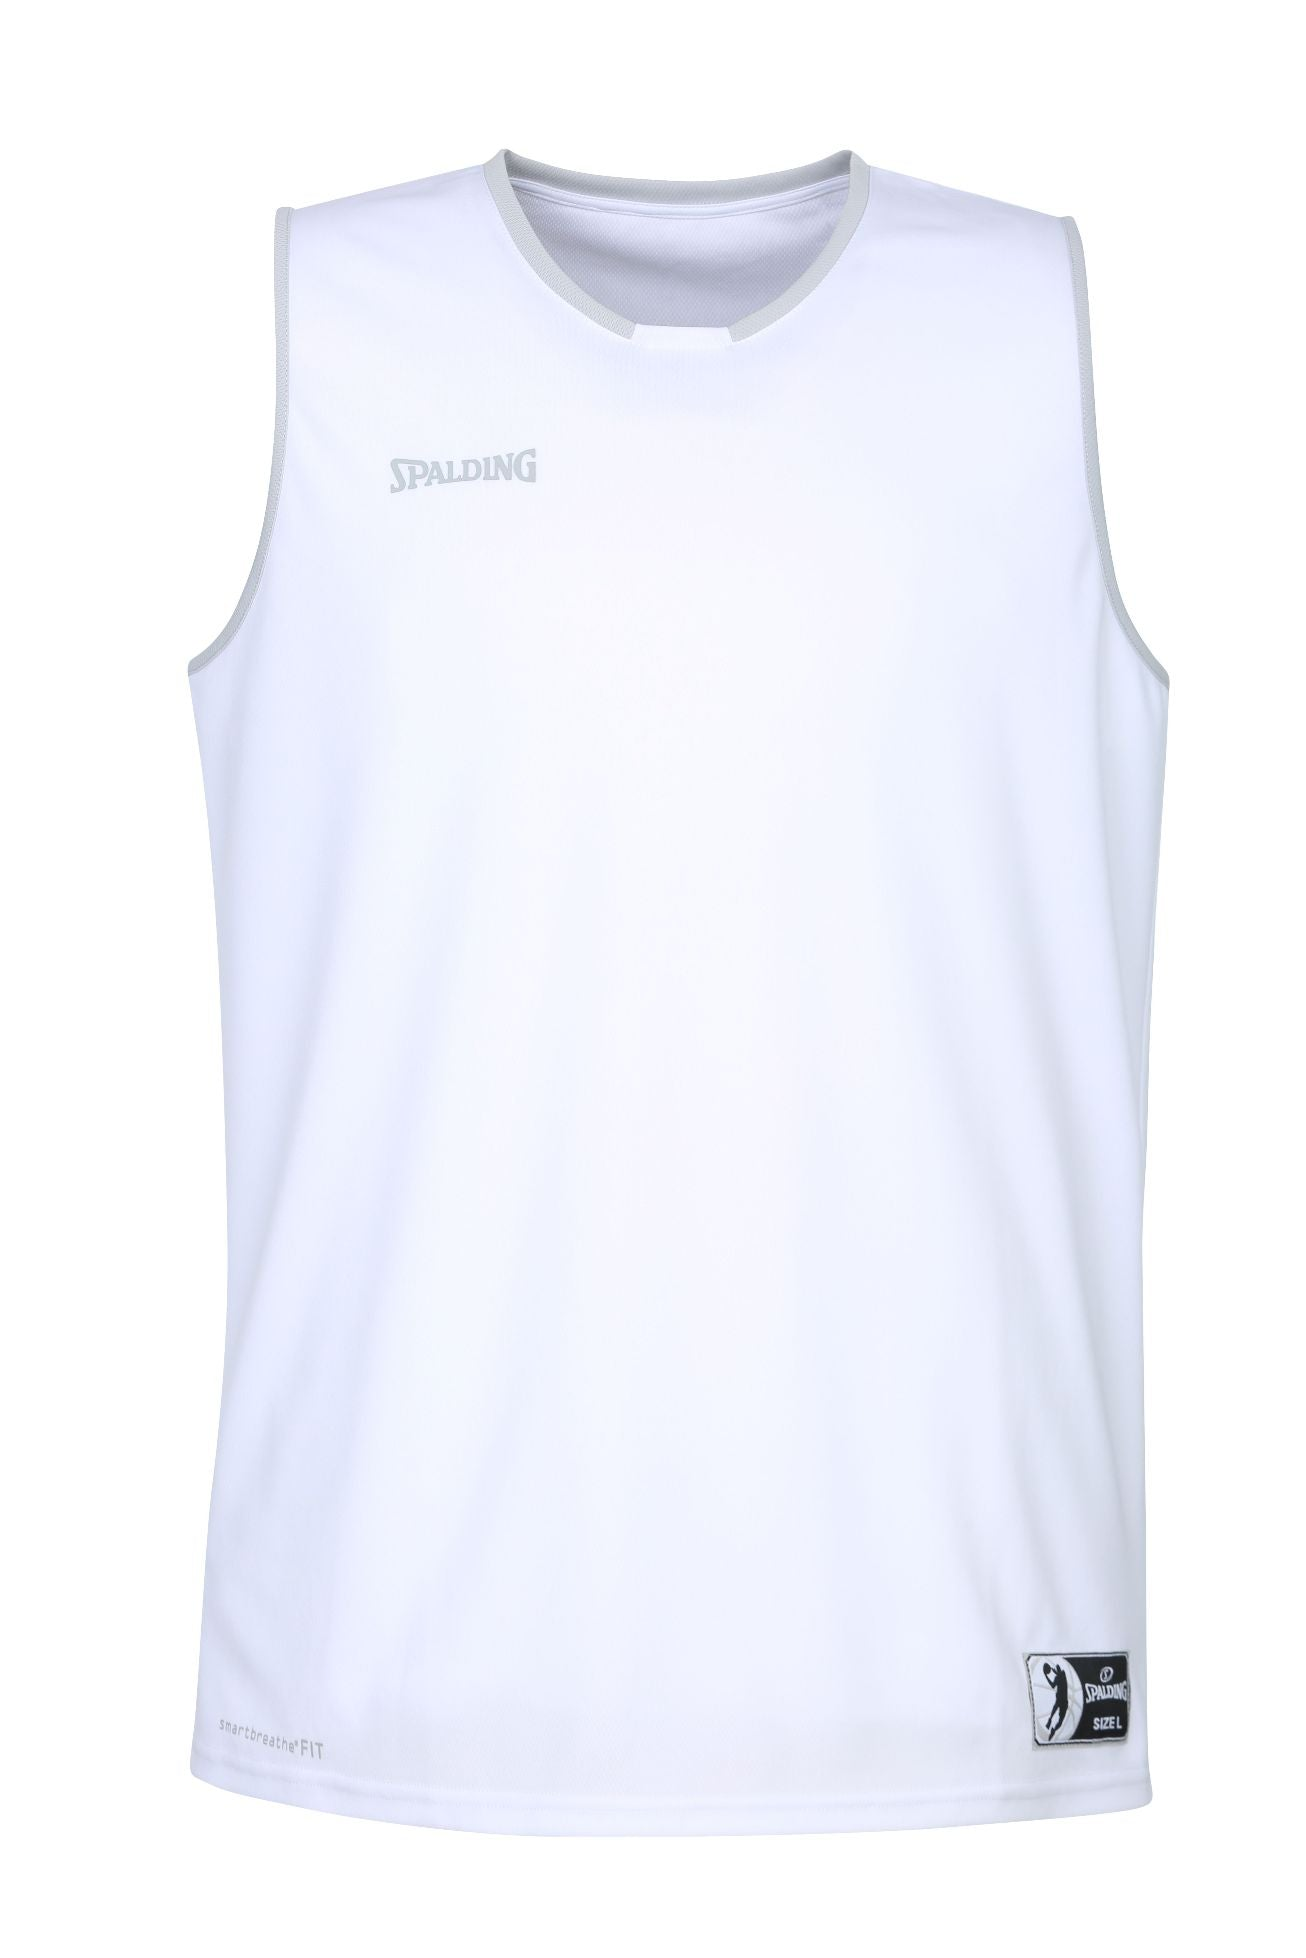 Teamwear - Spalding Kids' Move Jerseys - White/Silver Grey - SP-3002140-02